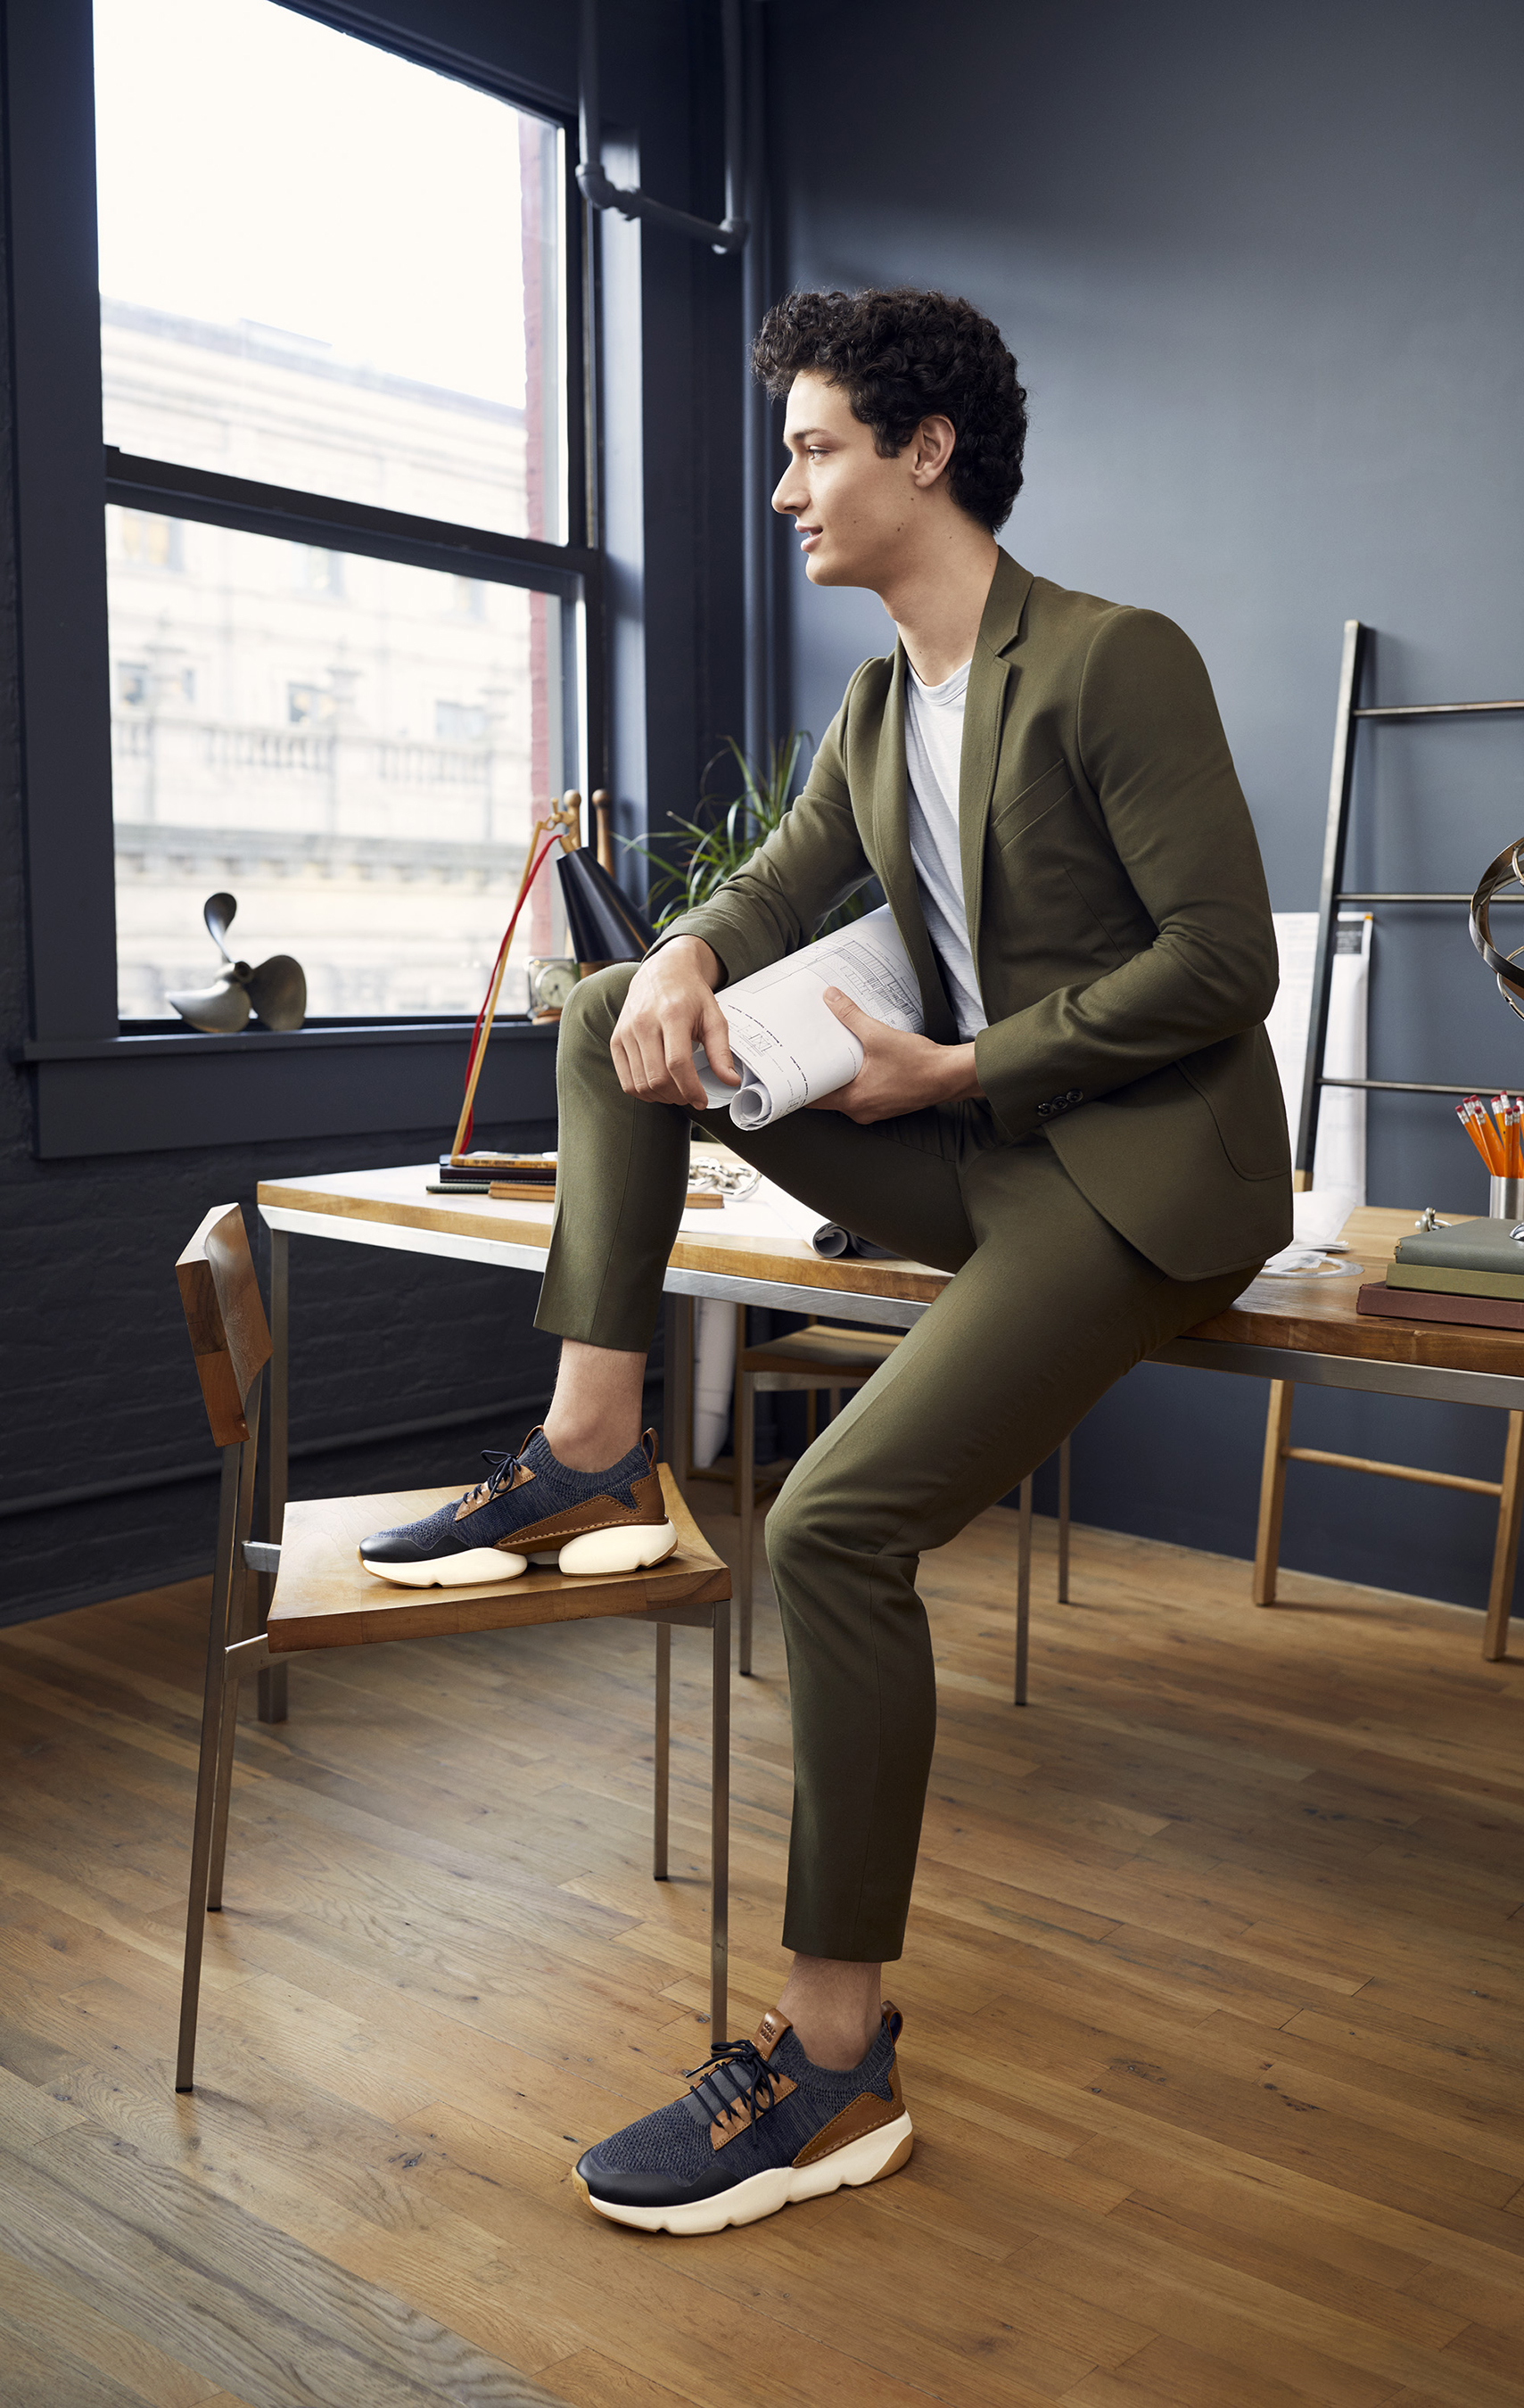 dc1d53268 Cole Haan Announces Launch Of The ZERØGRAND All-Day Trainer